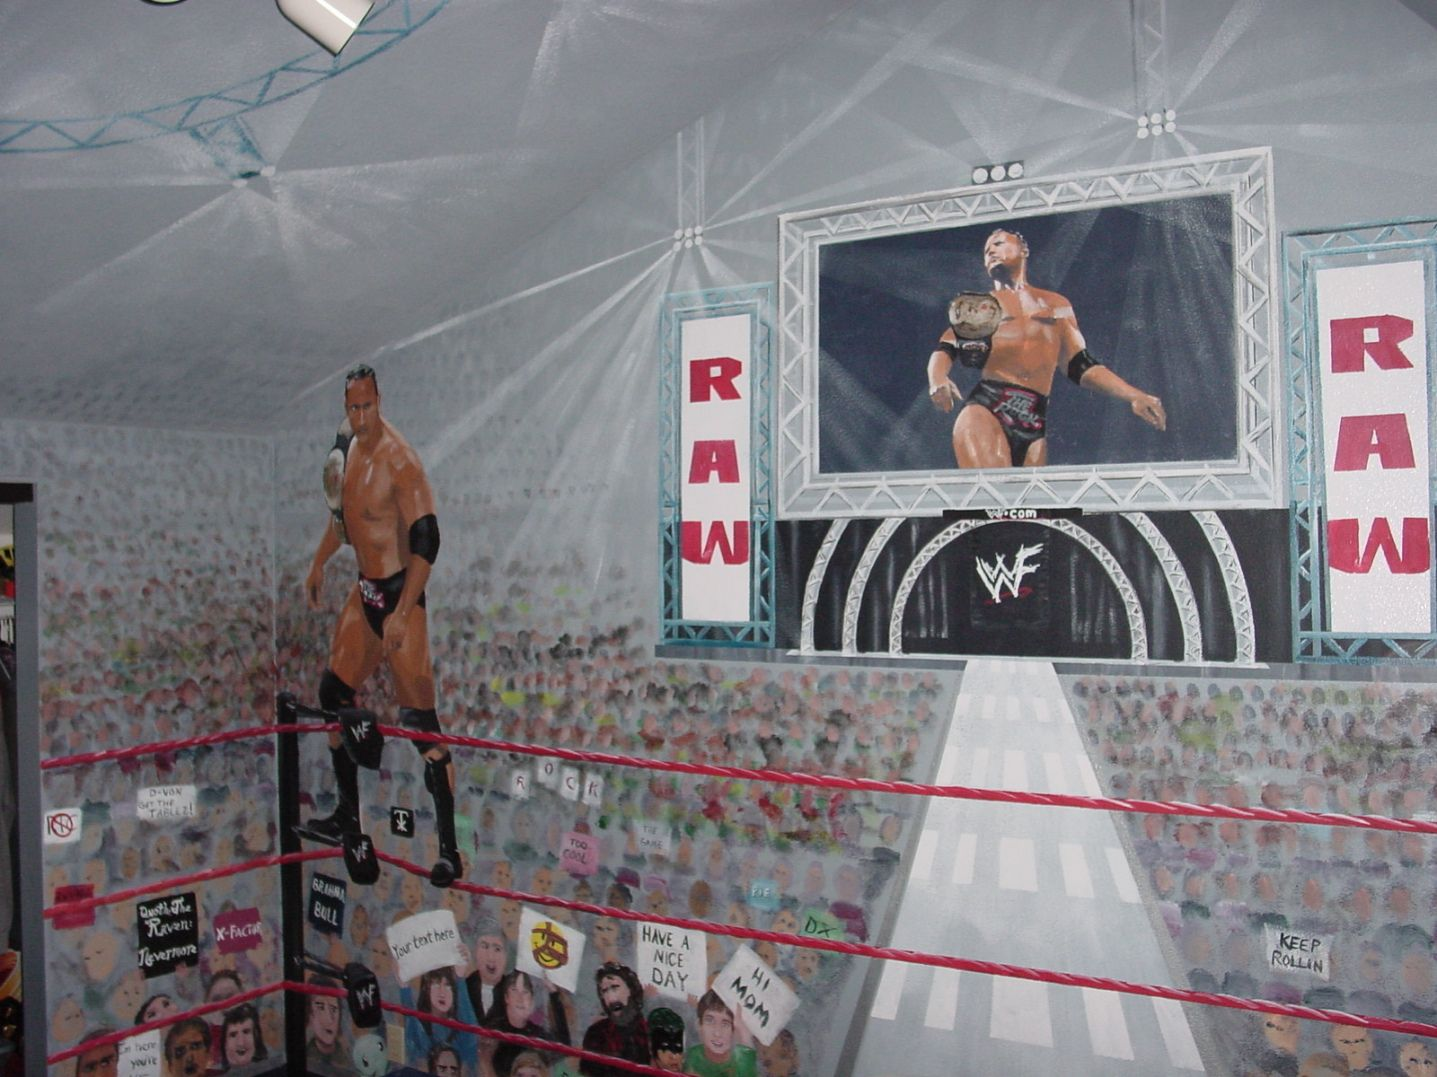 Delightful Wwe Wrestling Bedroom Wallpaper   Ideas For A Small Bedroom Check More At  Http:/